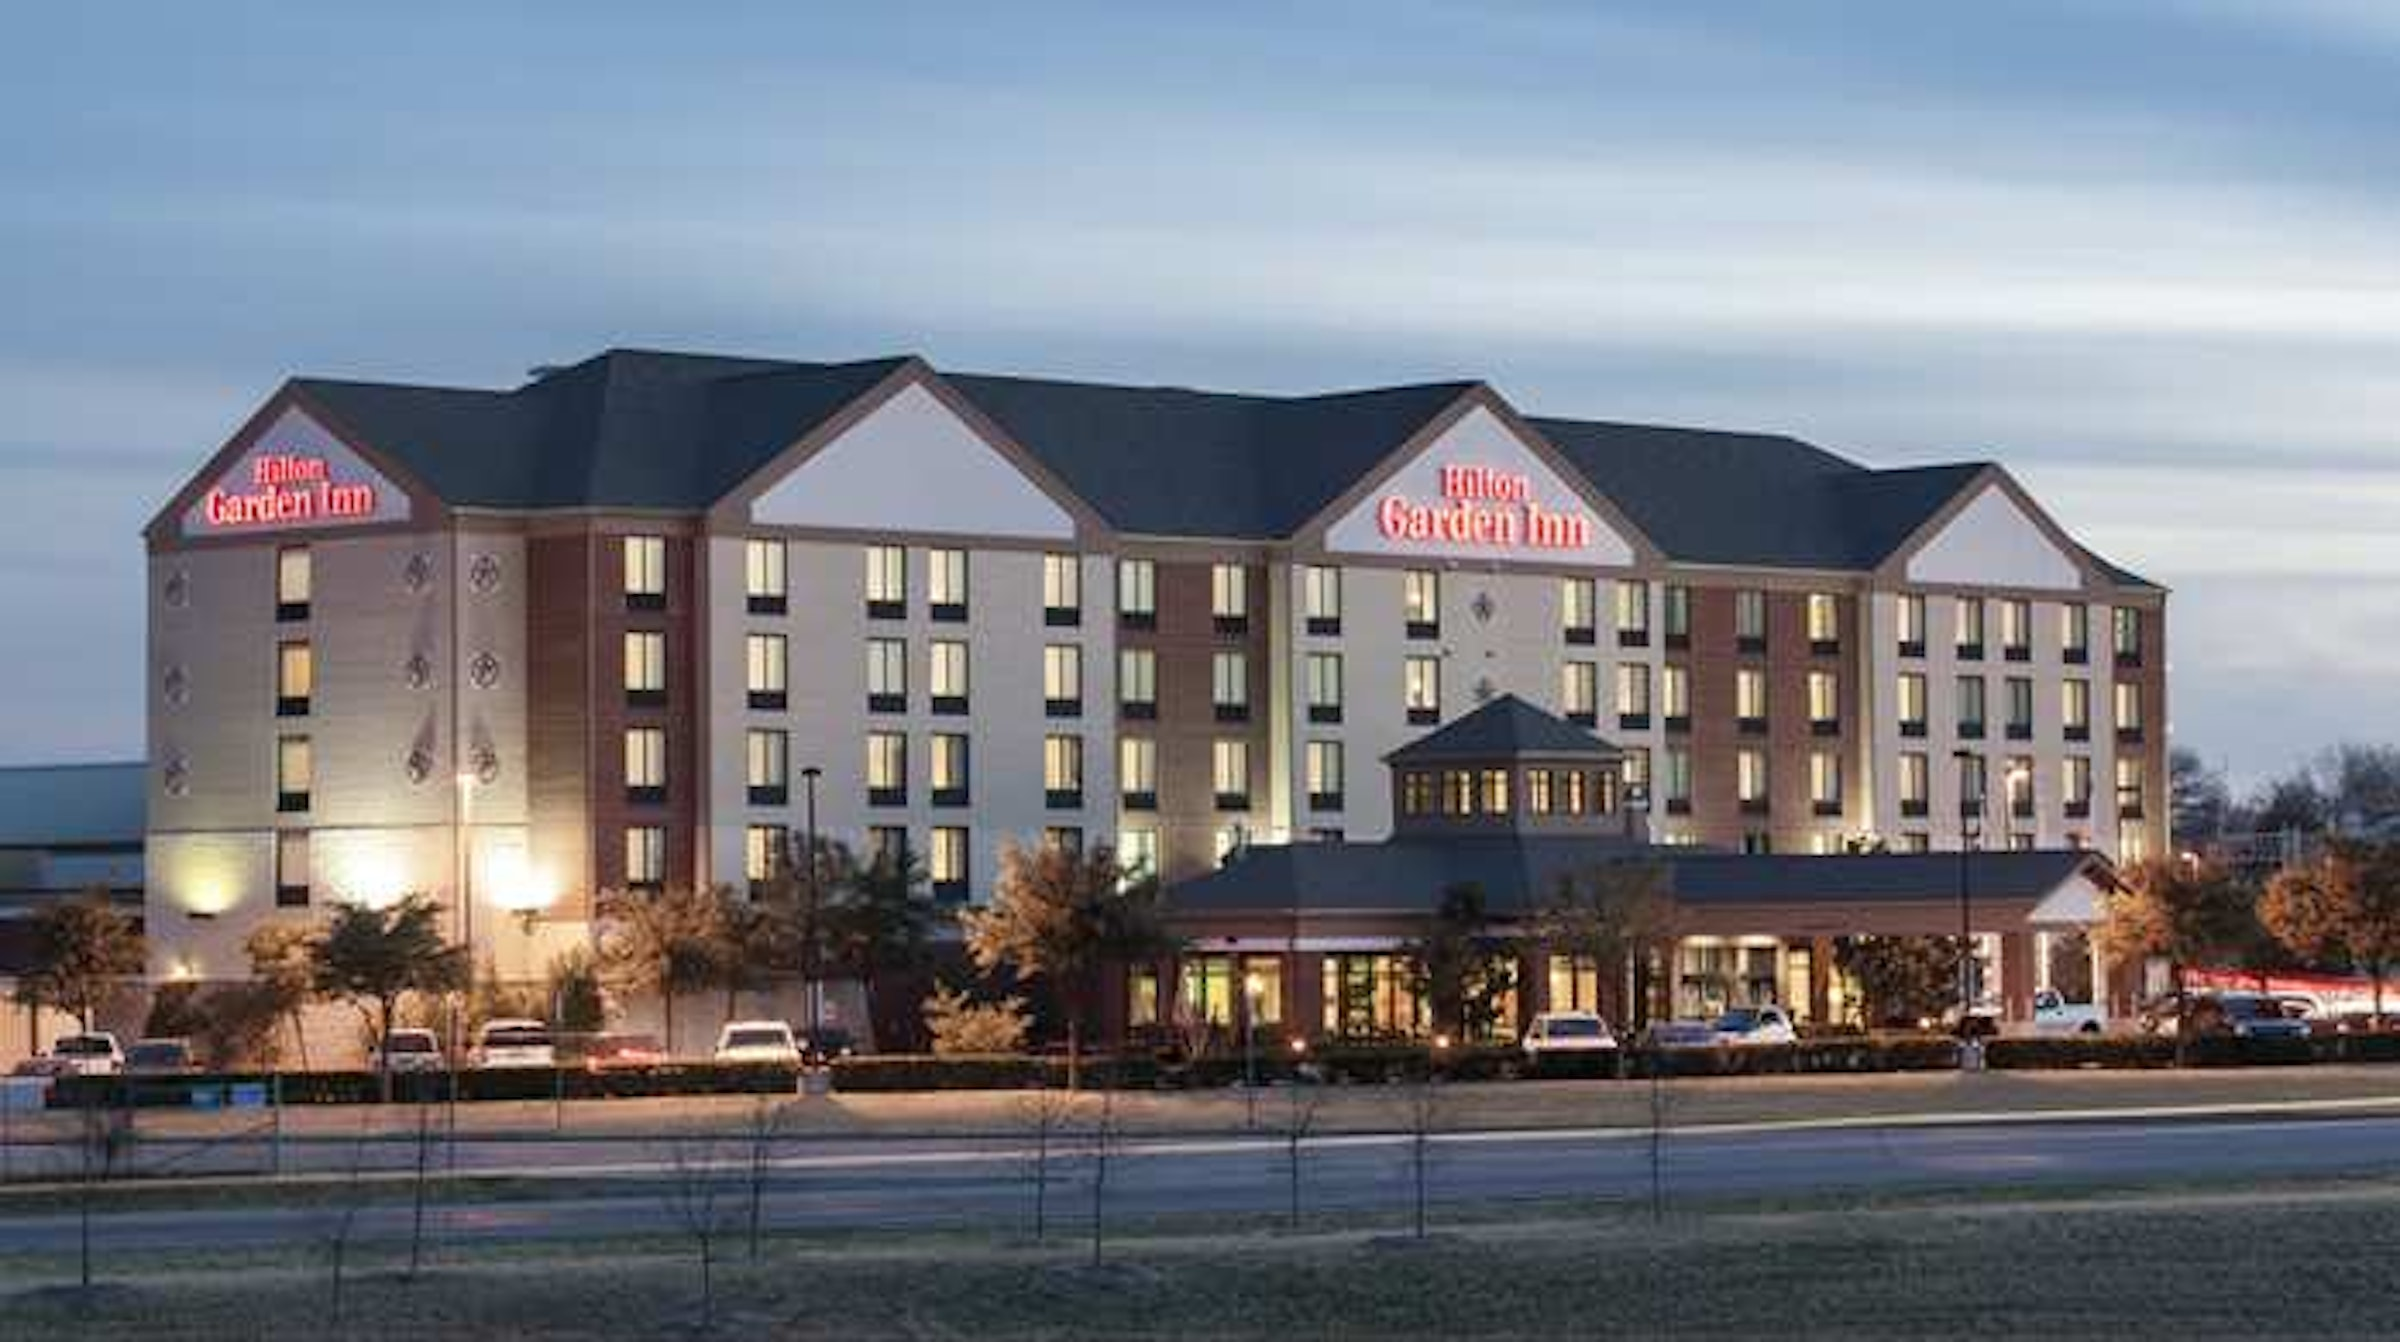 Hilton Garden Inn Dallas/Duncanville in Beyond Dallas